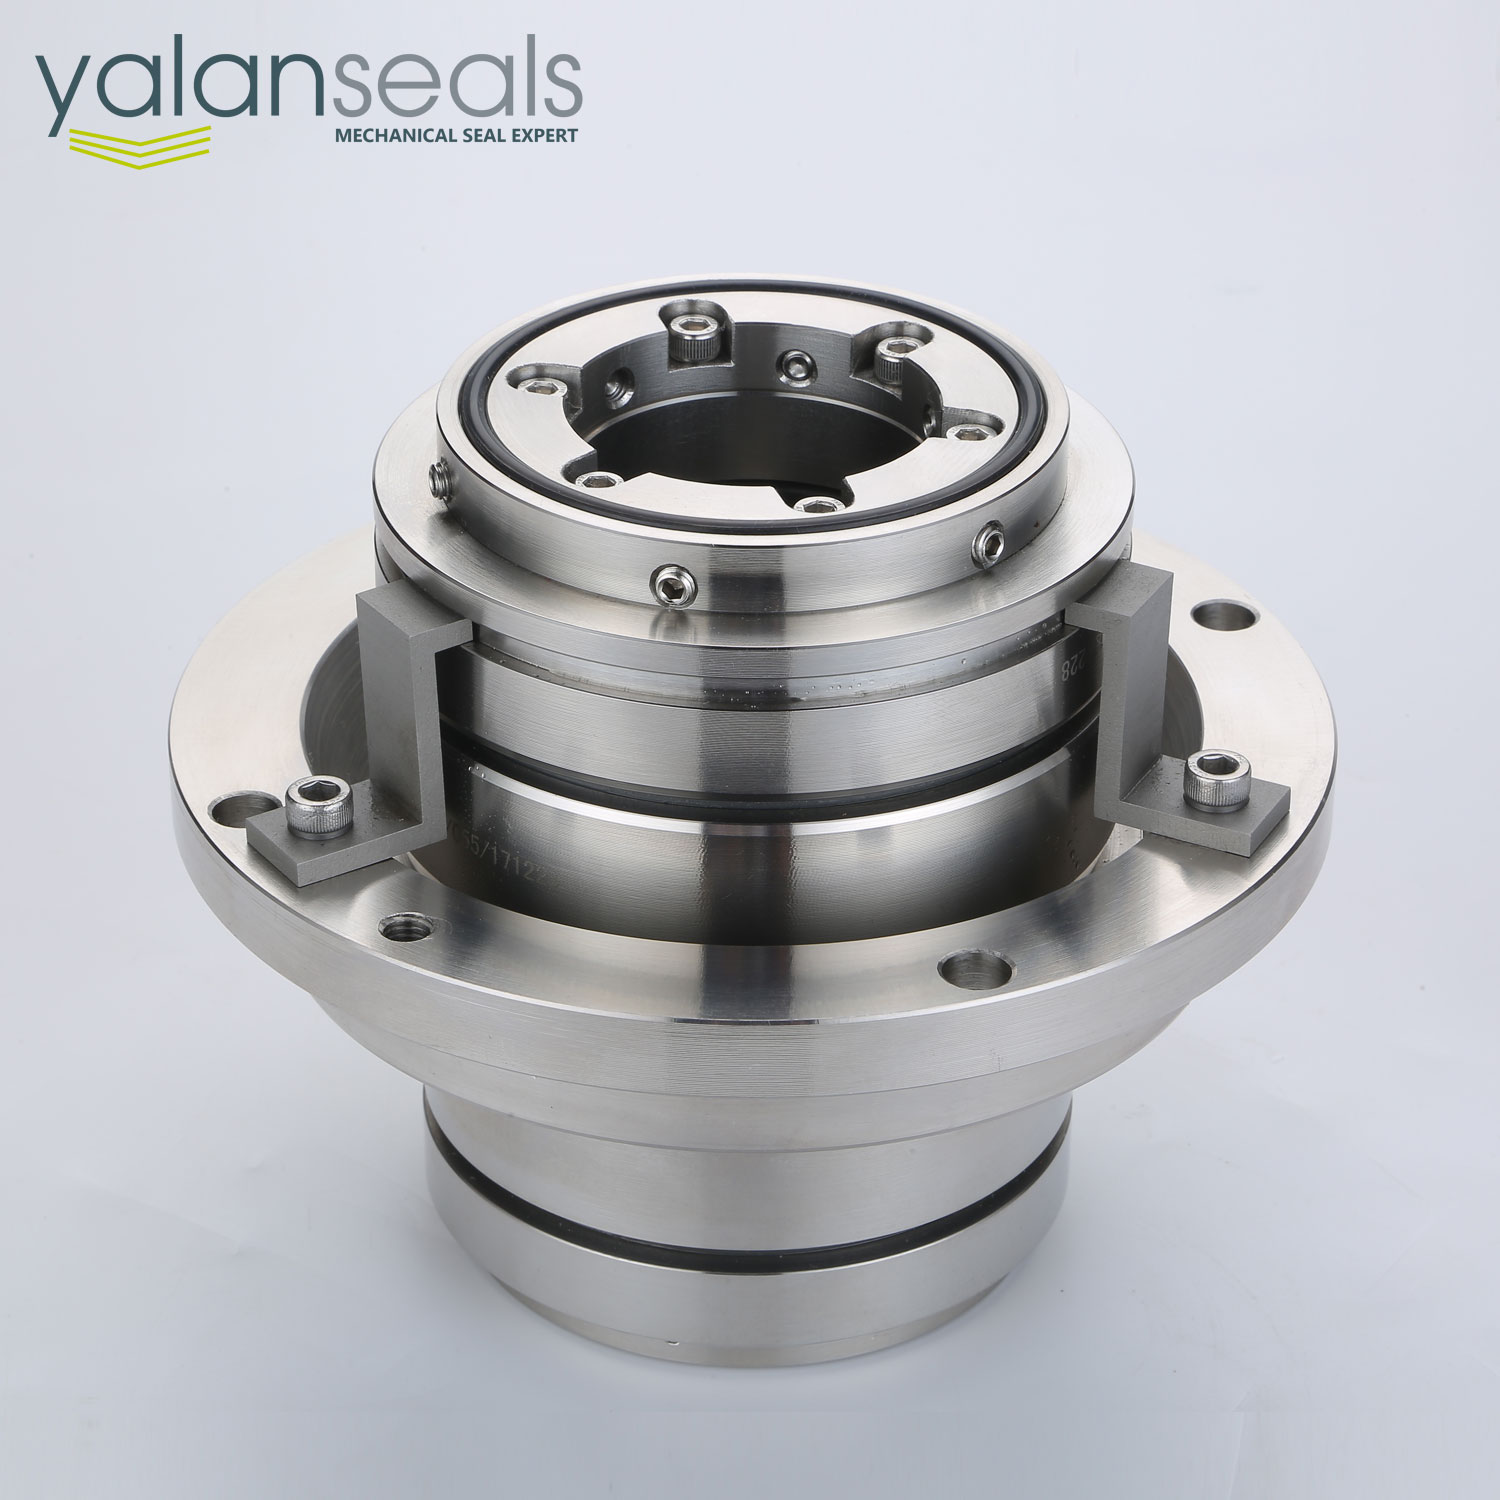 YALAN LP-D Cartridge Mechanical Seal for Paper Pulp Pumps and Sewage Pumps